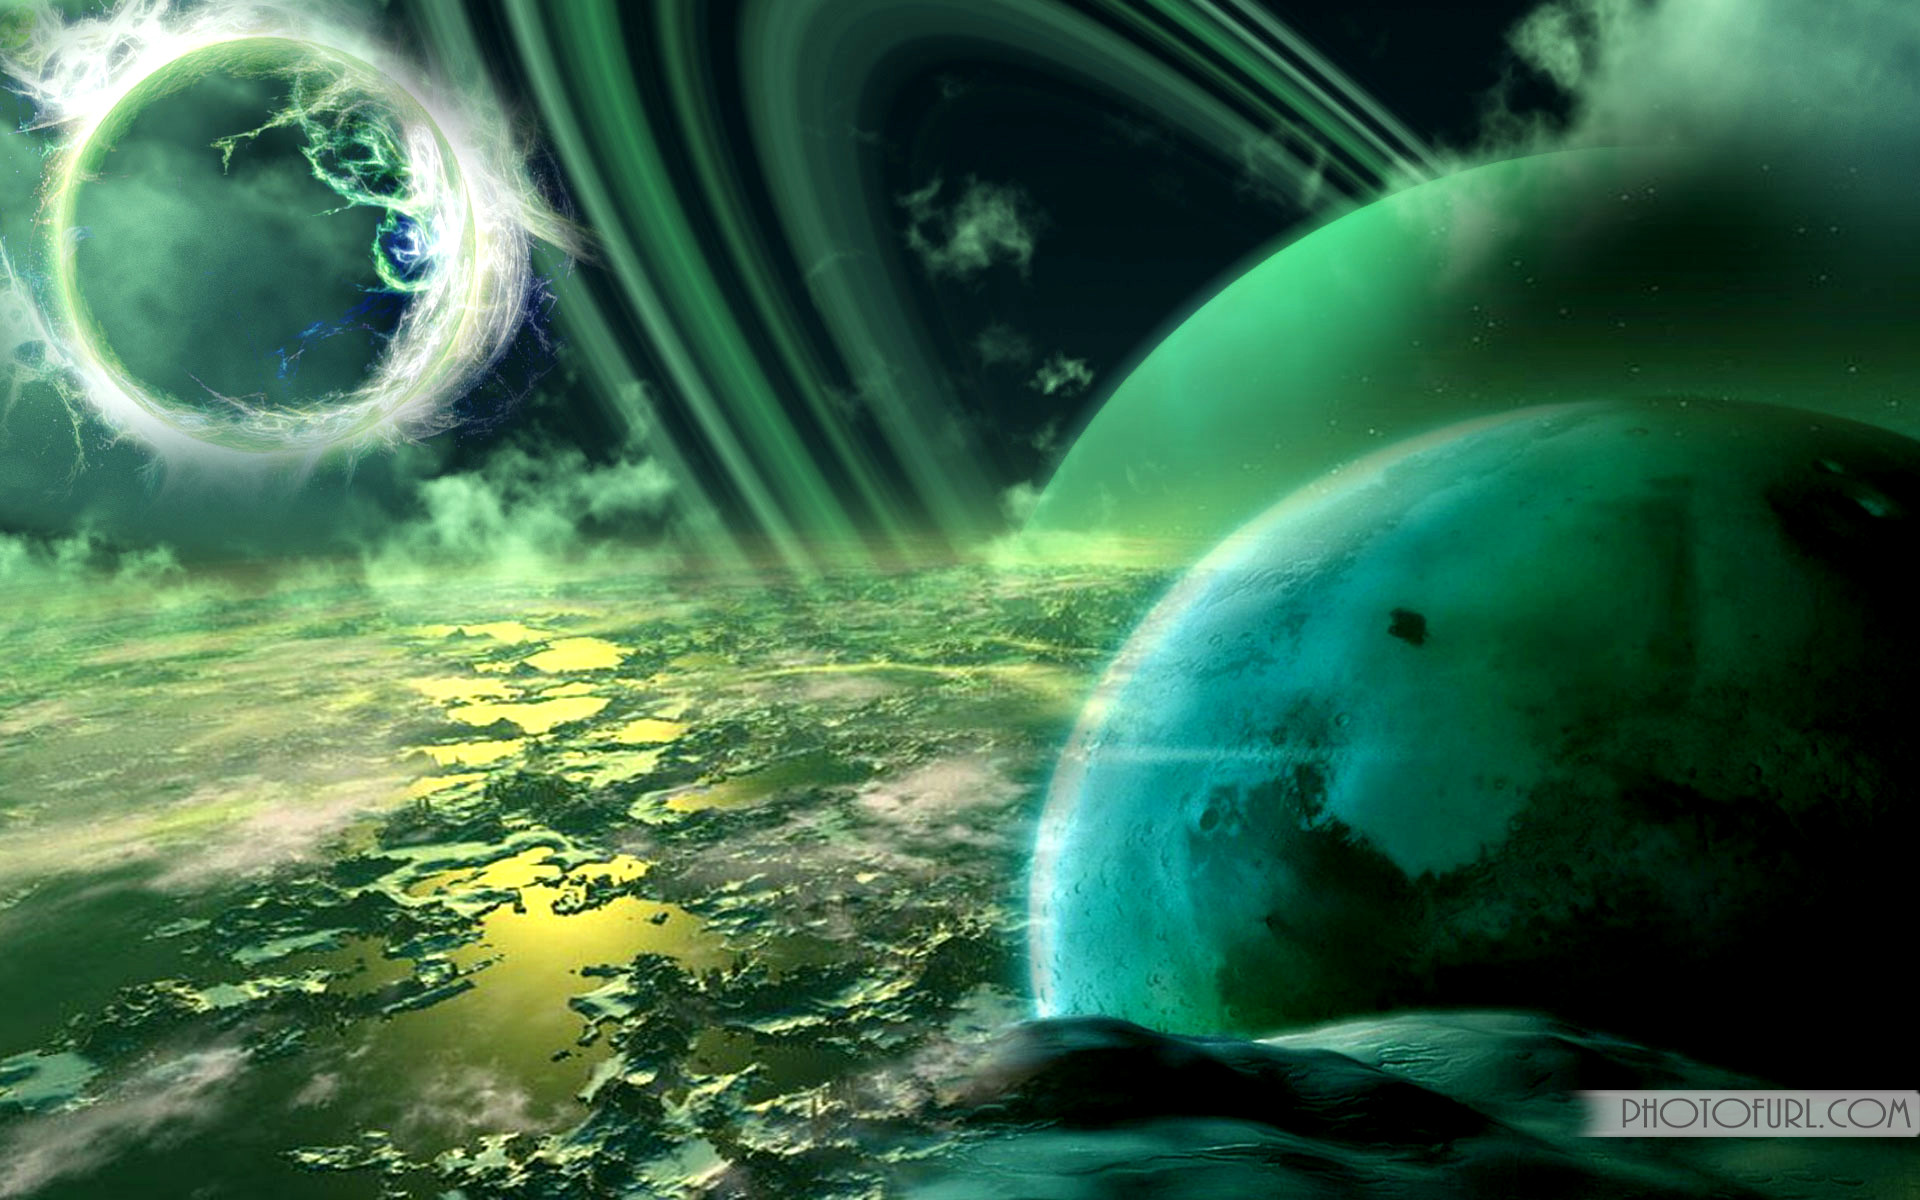 animated wallpapers free hd: 3d Animation Wallpapers